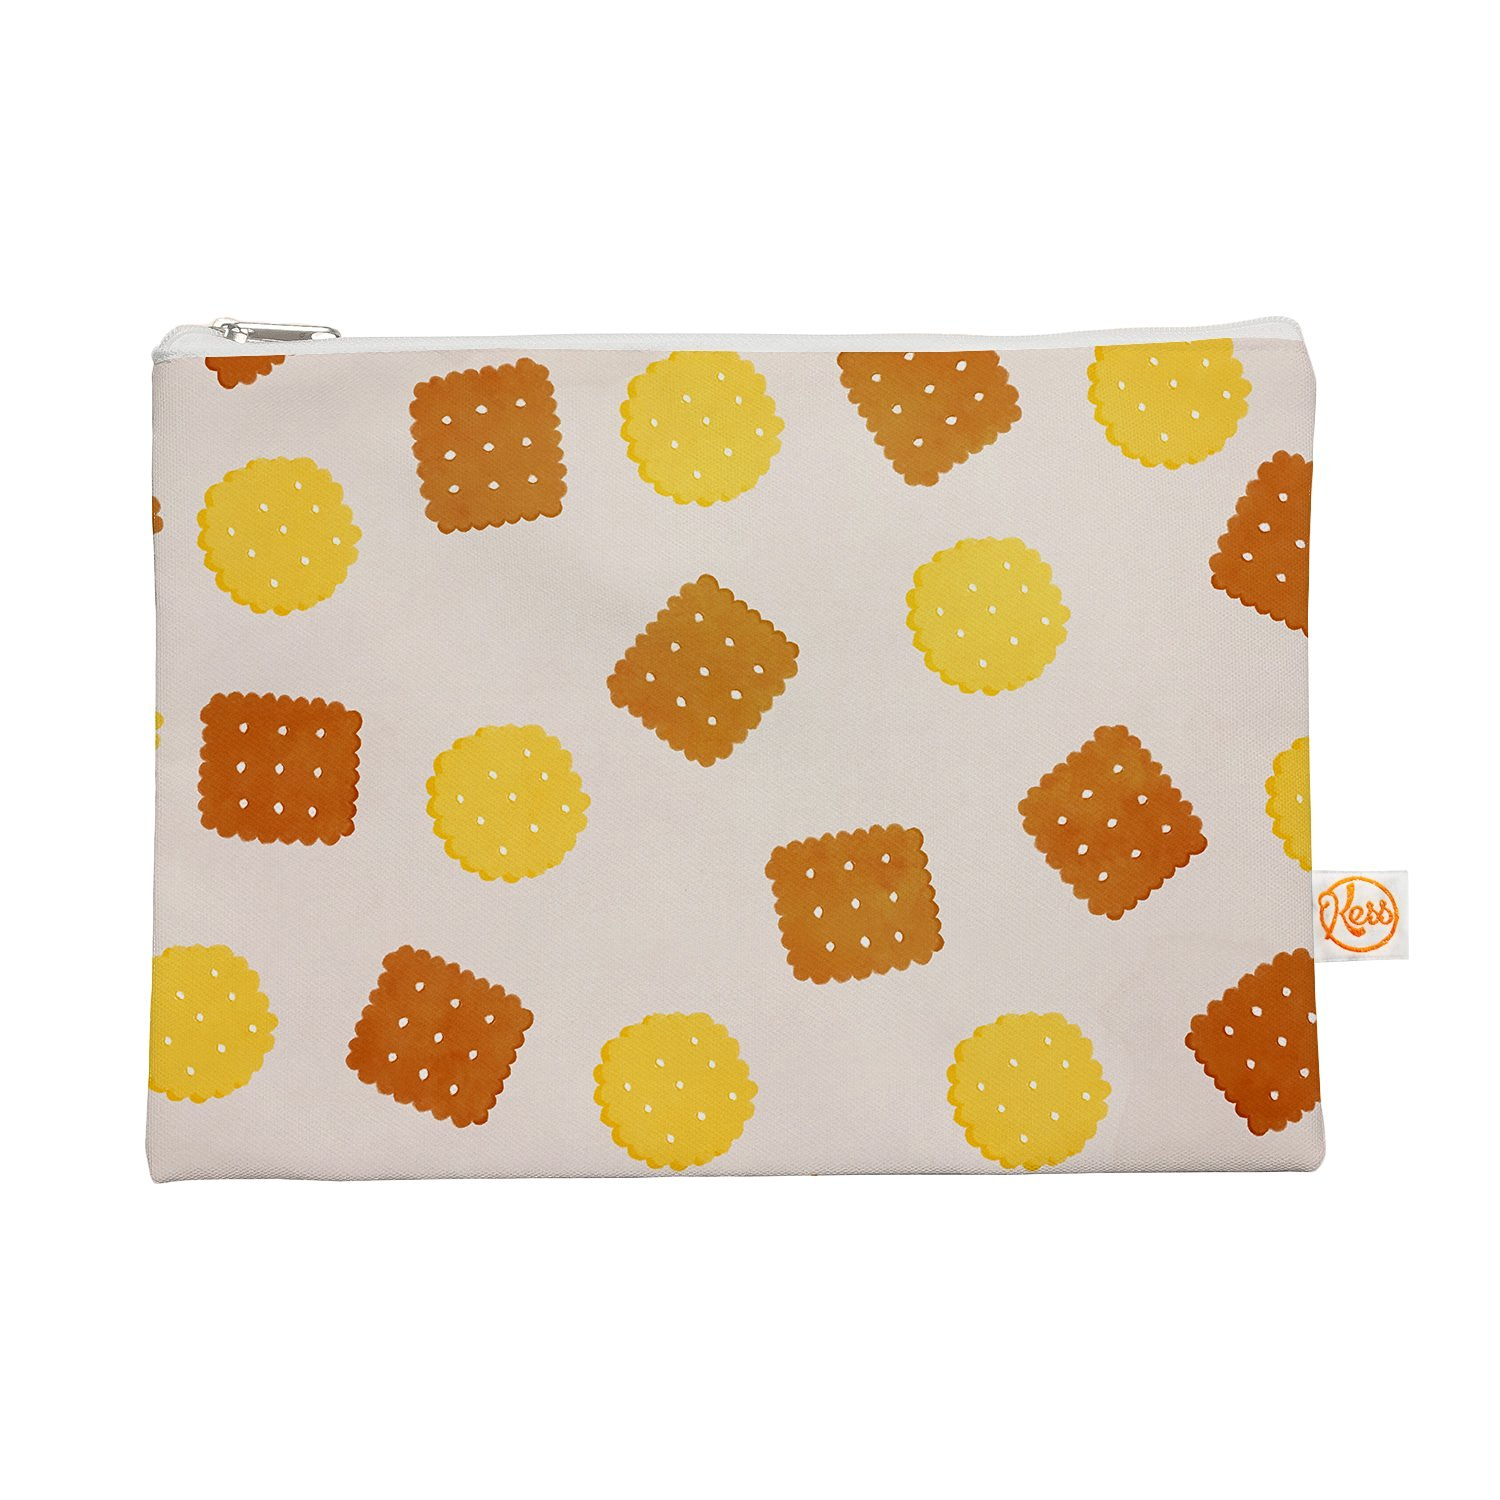 """Kess InHouse """"Do You Love Biscuits?"""" Everything Bag, 12.5"""" x 8.5"""", Brown Yellow (TT1007AEP02)"""